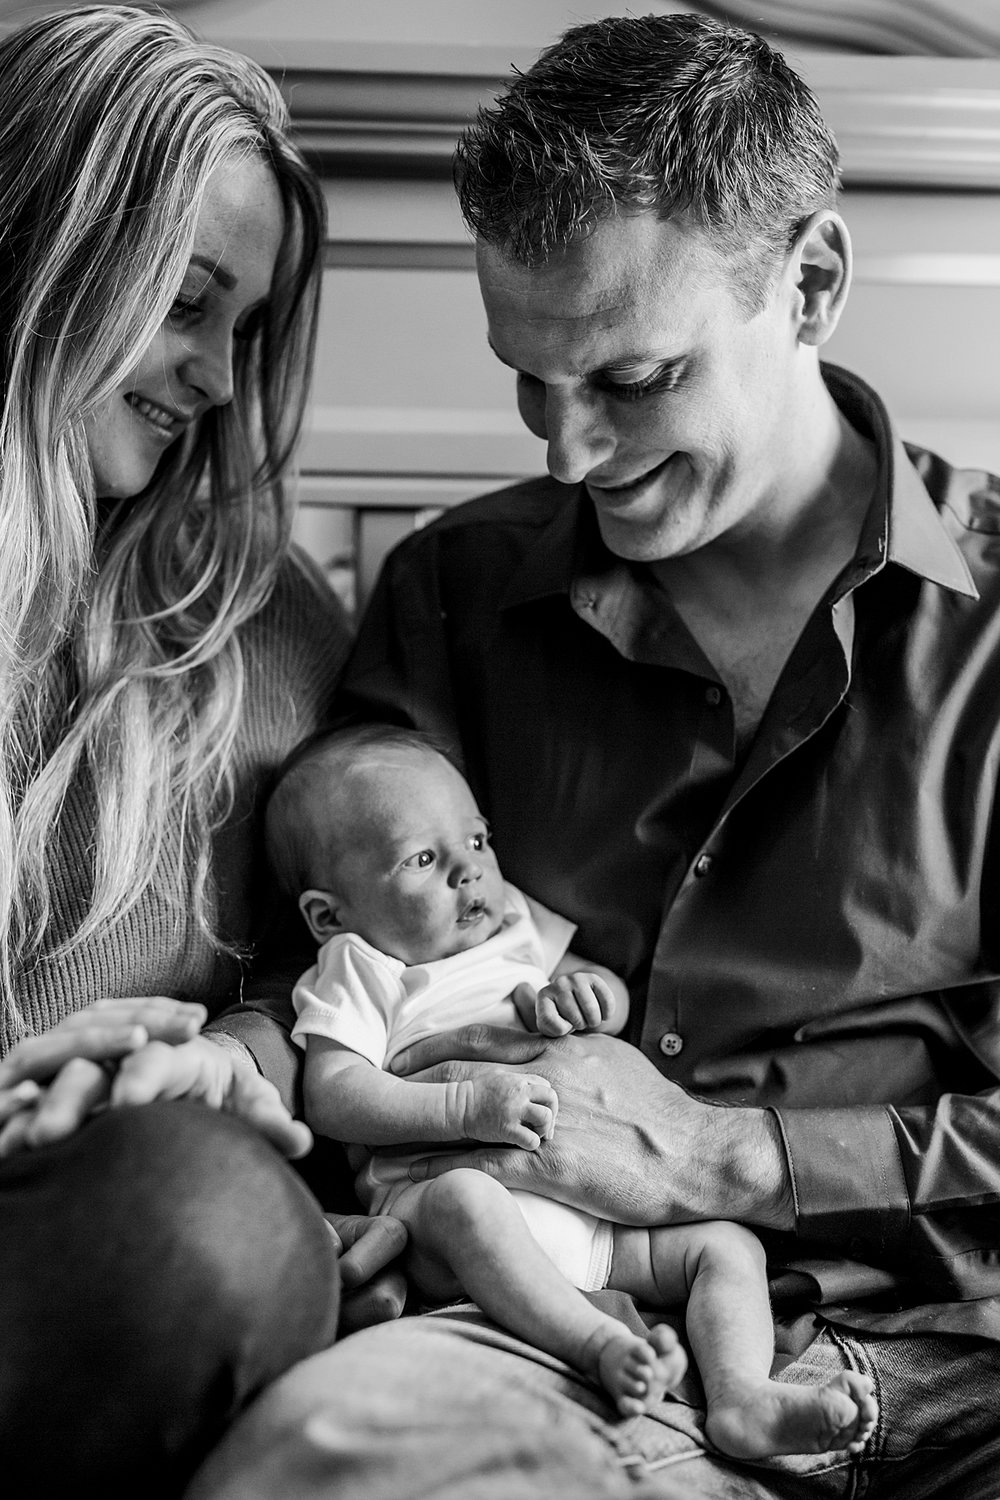 Orange County family photographer. Photo of mom, dad and newborn son taken in baby's room during newborn photo shoot in Mission Viejo Orange County